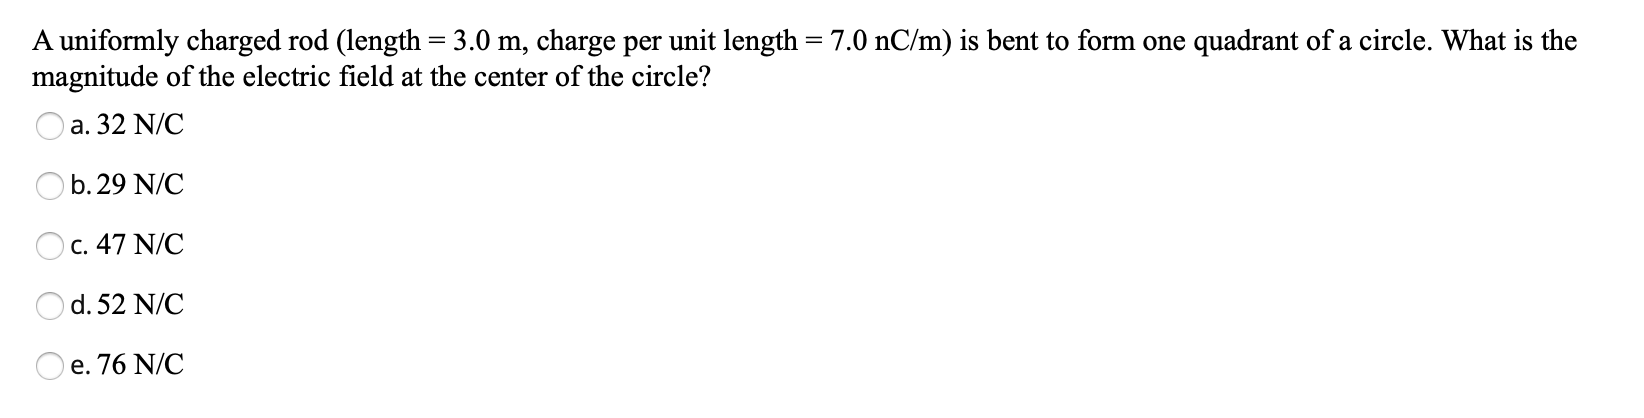 magnitude of the electric field at the center of the circle?